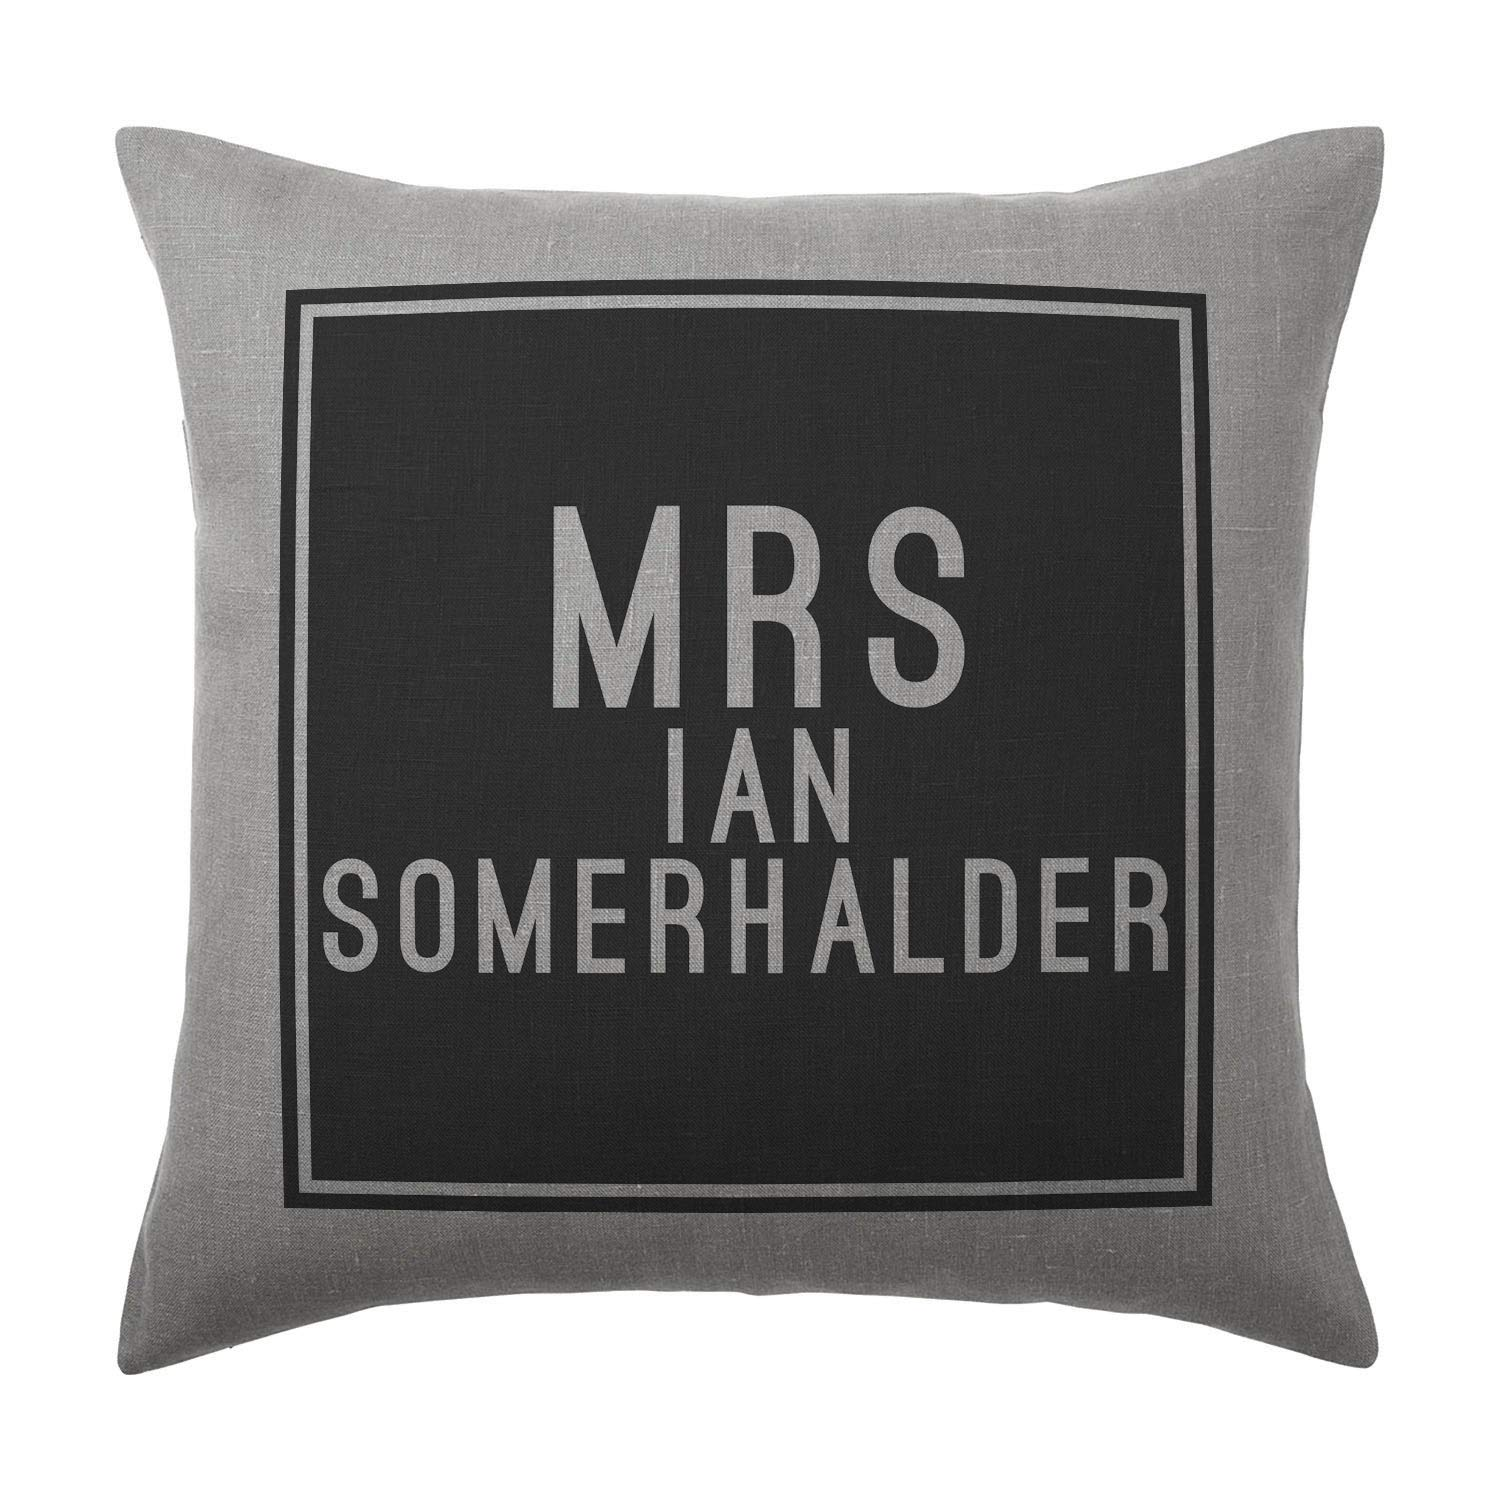 Ian Somerhalder Cushion Pillow - Silver Grey - 100% Cotton - Available with or without filling pad - 40x40cm (Cover and filling pad) The Stocking Fillers